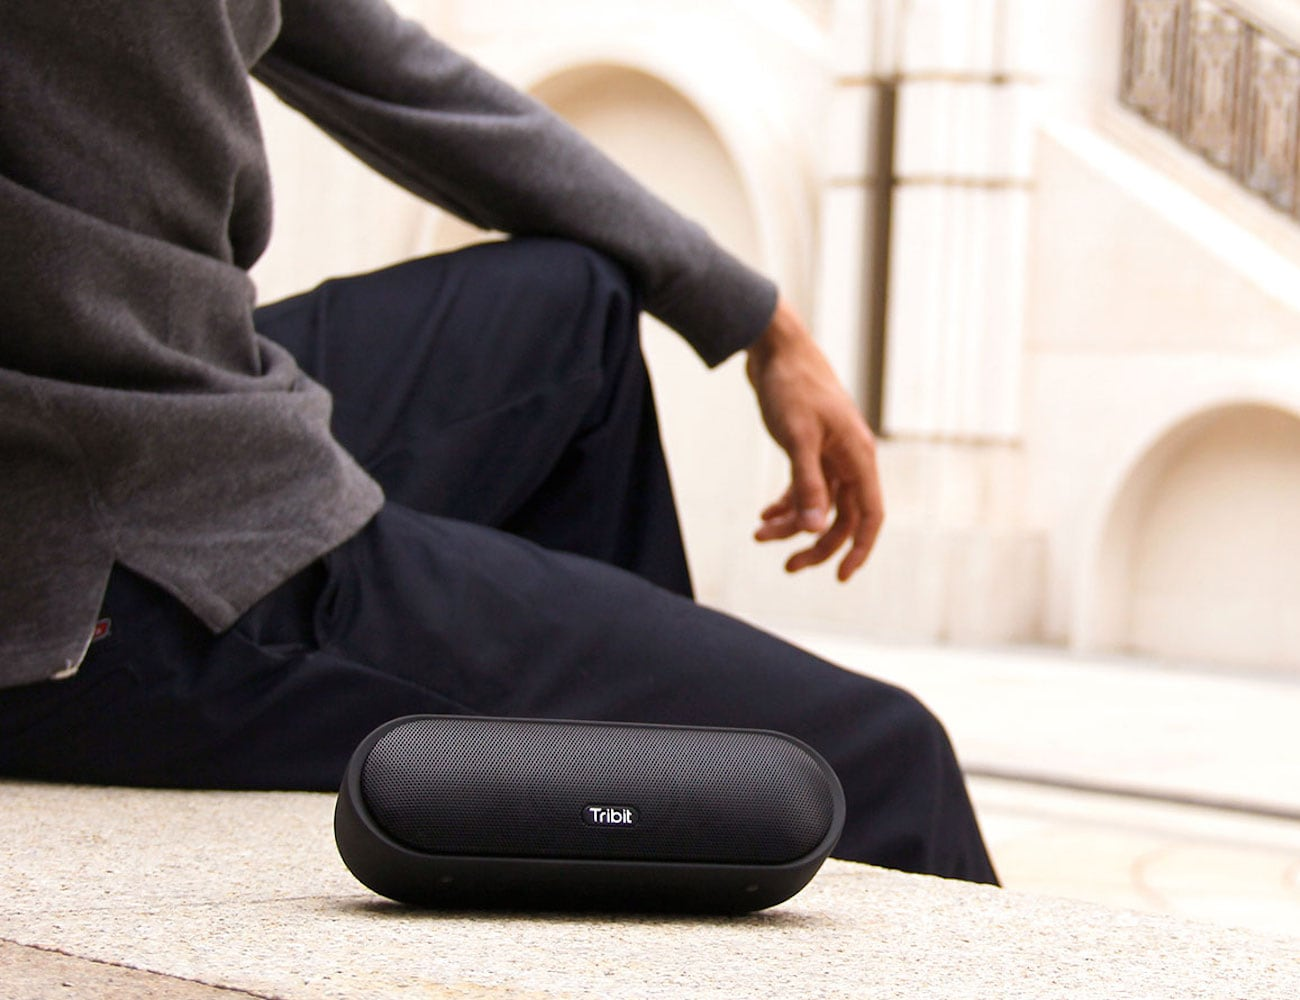 Tribit MaxSound Plus Extra Bass Portable Speaker goes wherever you go